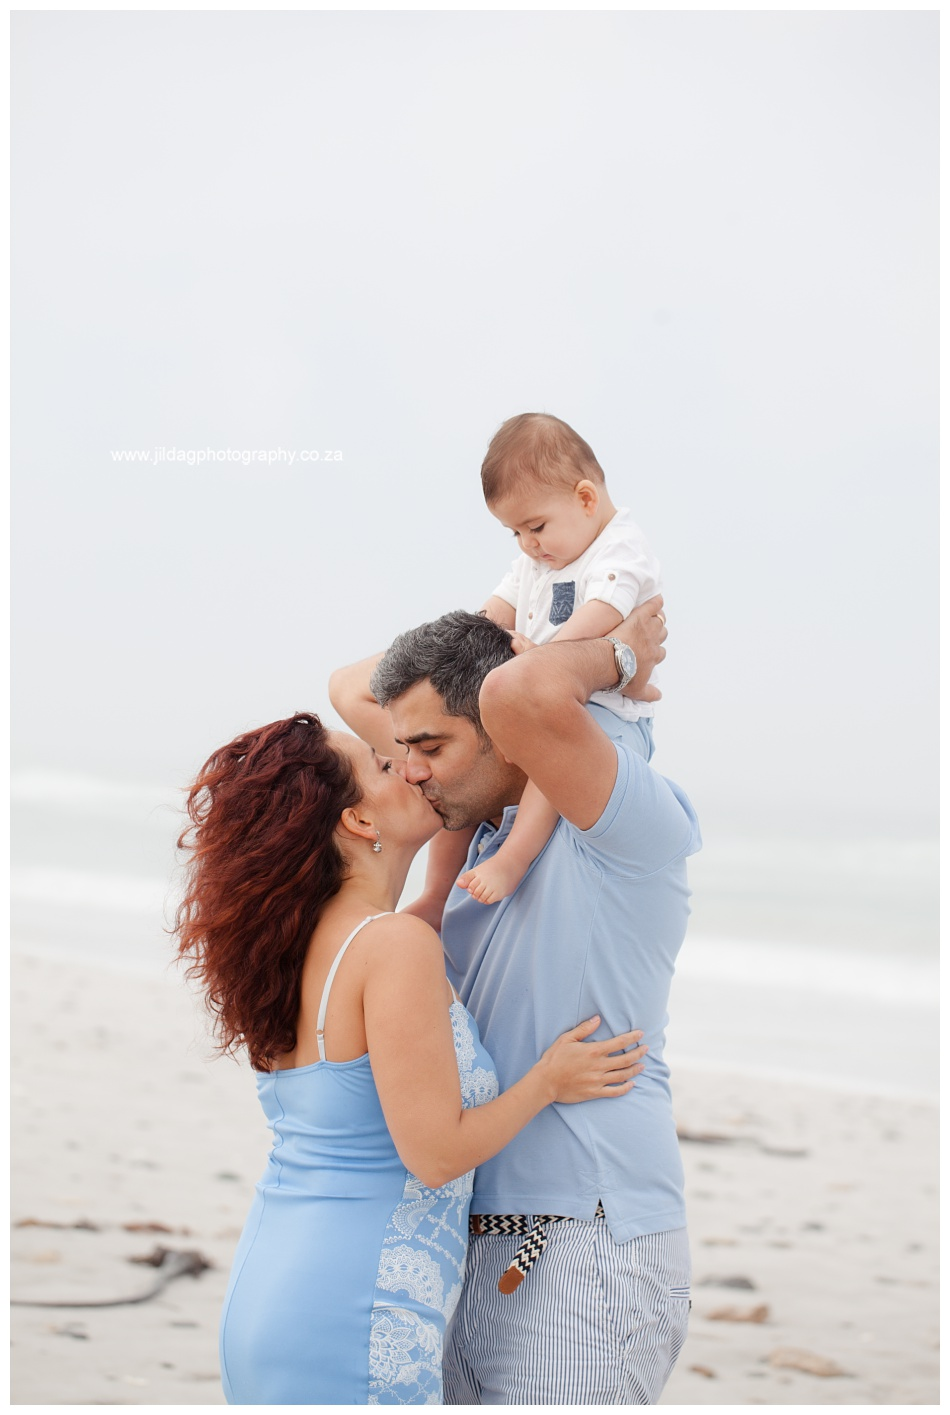 Jilda-G-Photography-family-photographer-beach_0701